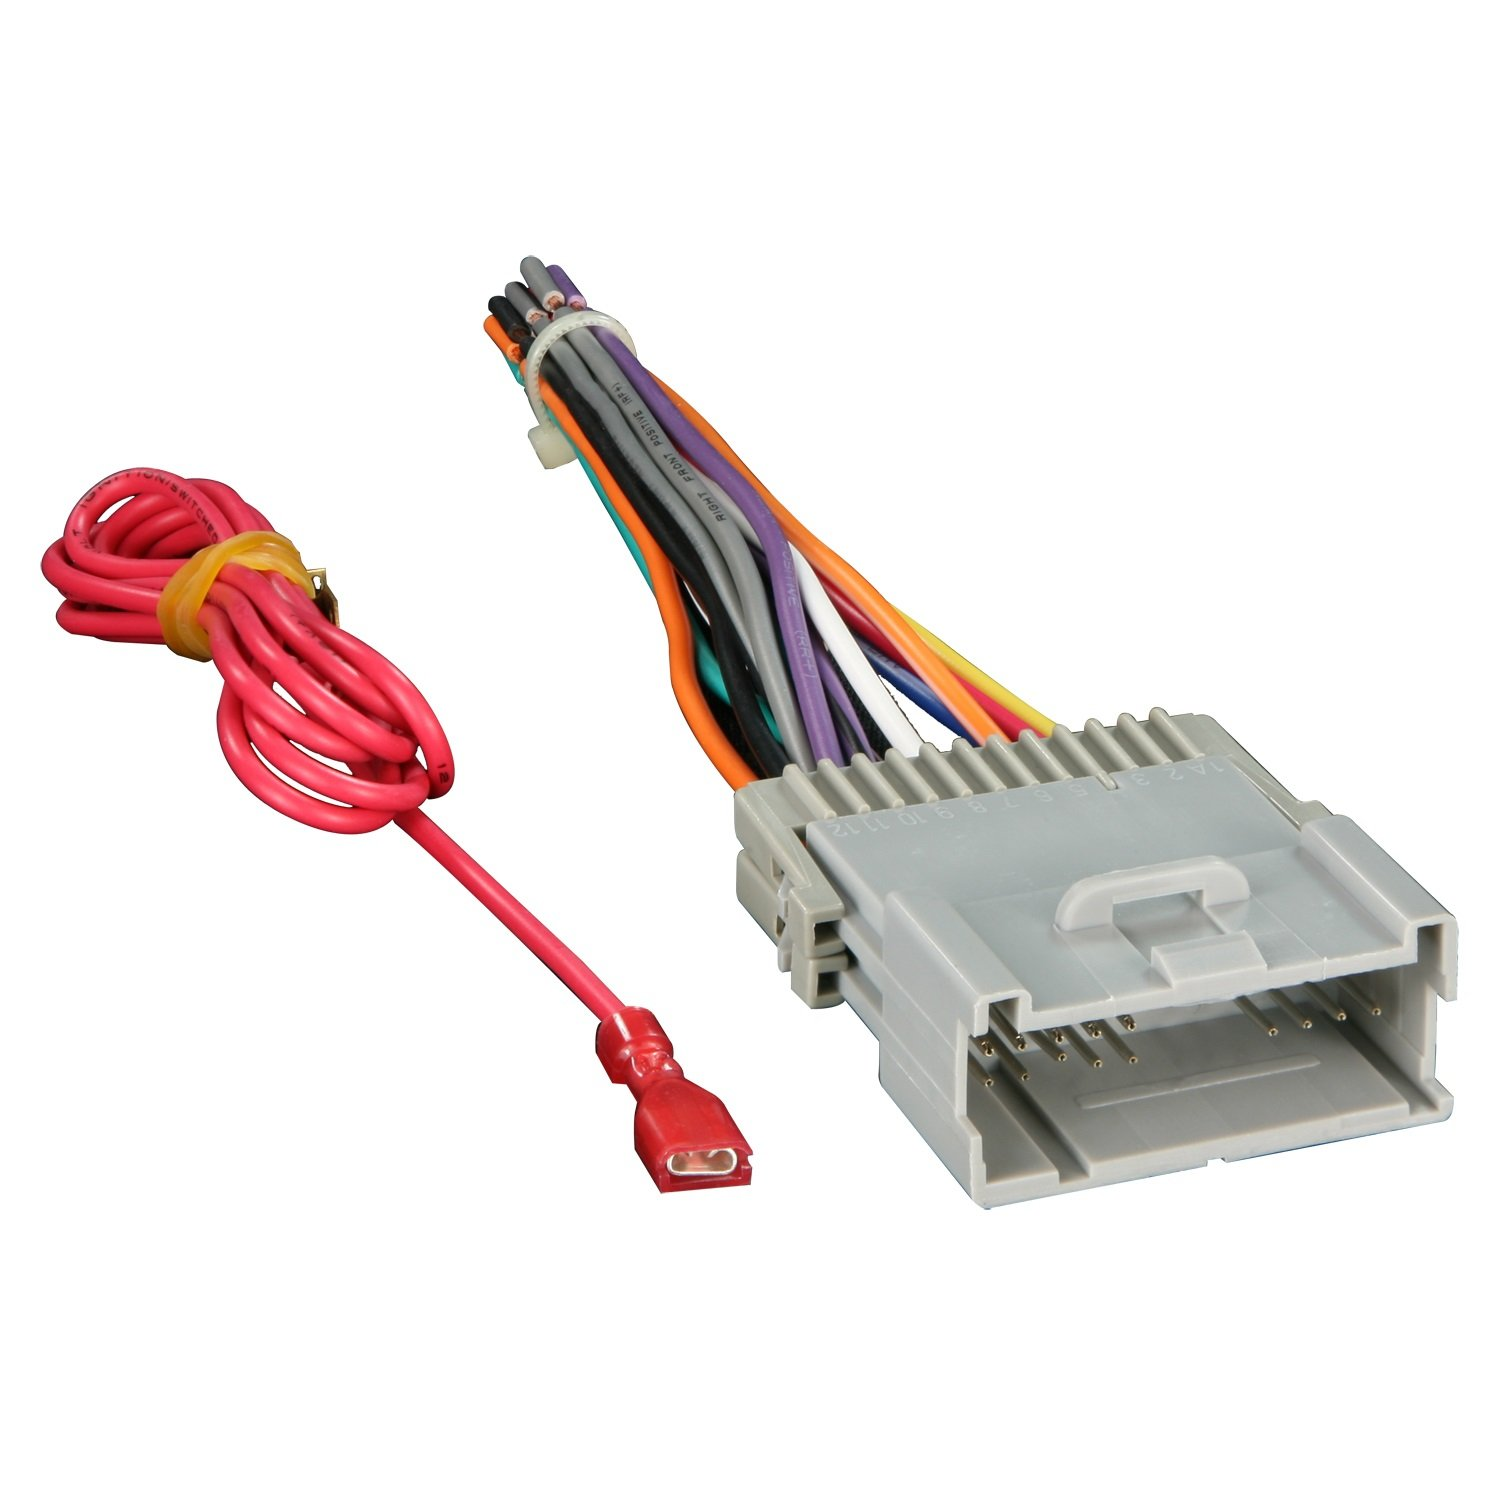 61eewxp9orL._SL1500_ amazon com metra 70 2003 radio wiring harness for gm 98 08  at aneh.co